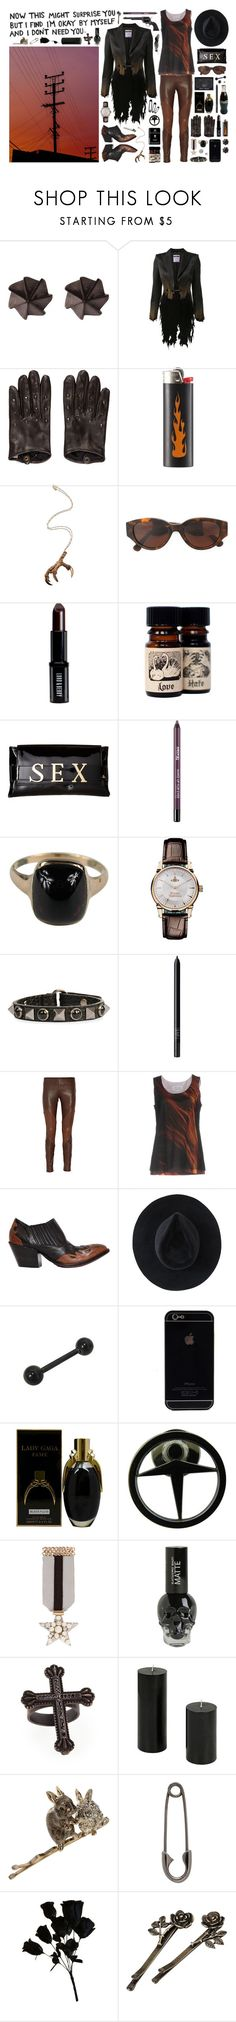 """""""show me your power"""" by nothingisnormal ❤ liked on Polyvore featuring Edge Only, Moschino, Bottega Veneta, Pamela Love, RetroSuperFuture, Lord & Berry, Vivienne Westwood, Valentino, xO Design and NARS Cosmetics"""